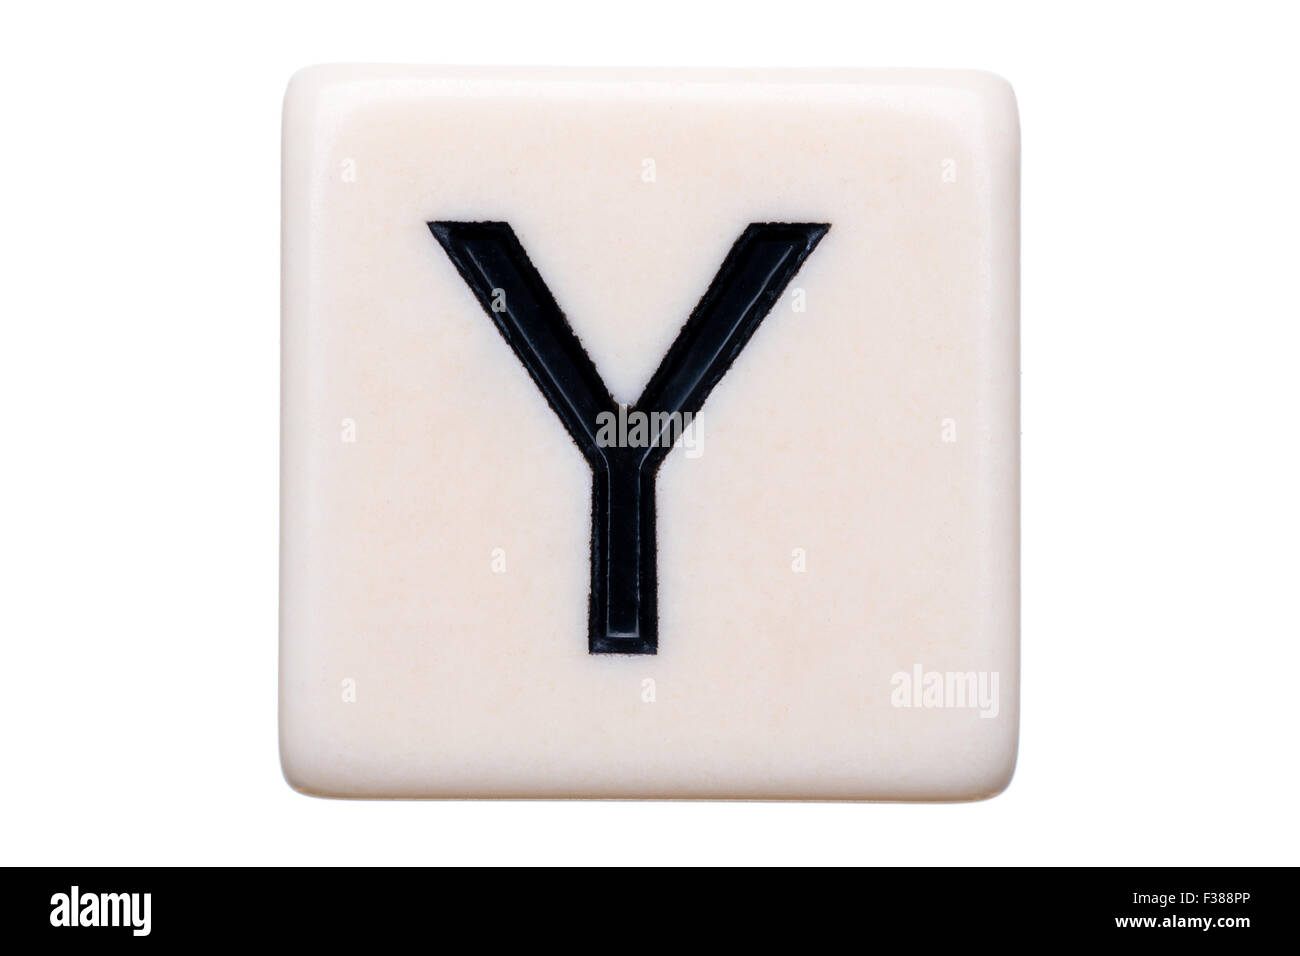 A macro shot of a game tile with the letter Y on it on a white background. - Stock Image